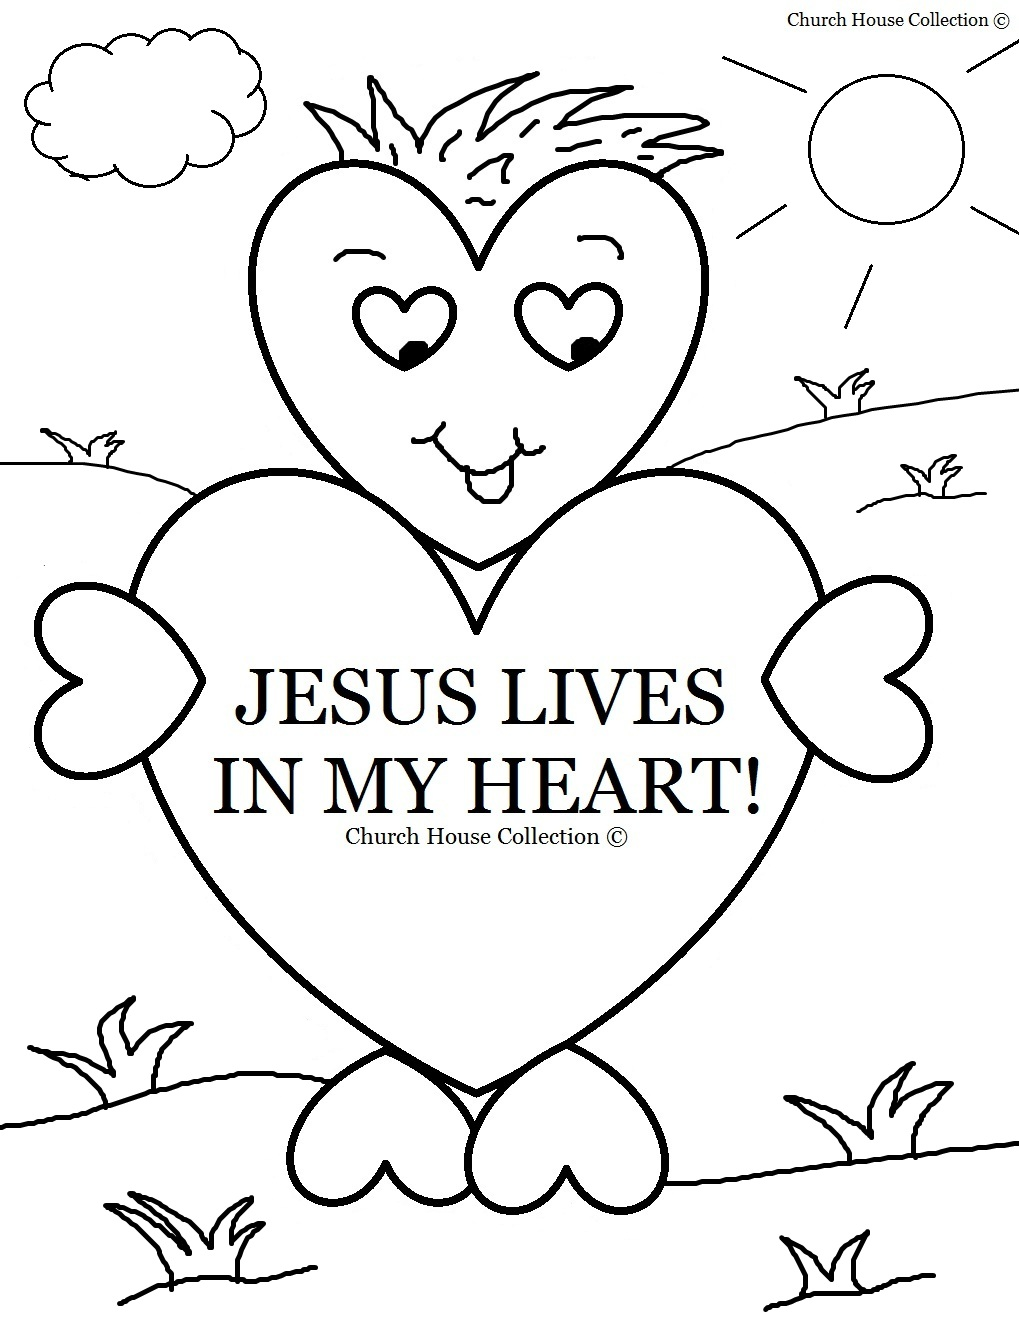 Coloring page sheet for kids sunday school children 27s church